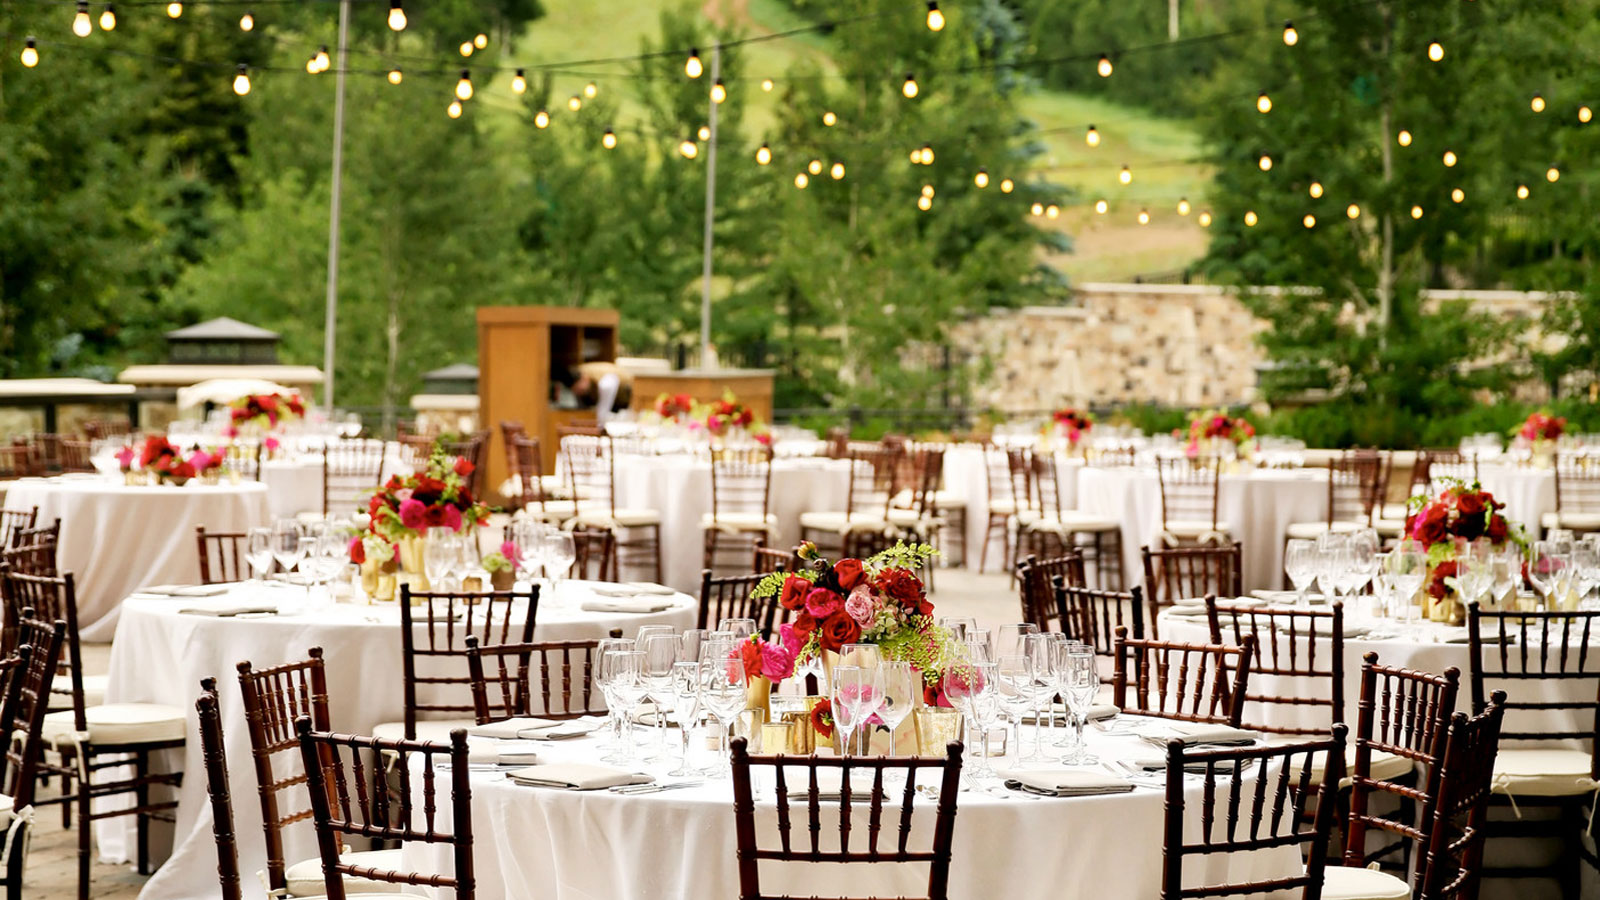 Outdoor Wedding Venue Photo Gallery: The St. Regis Deer Valley